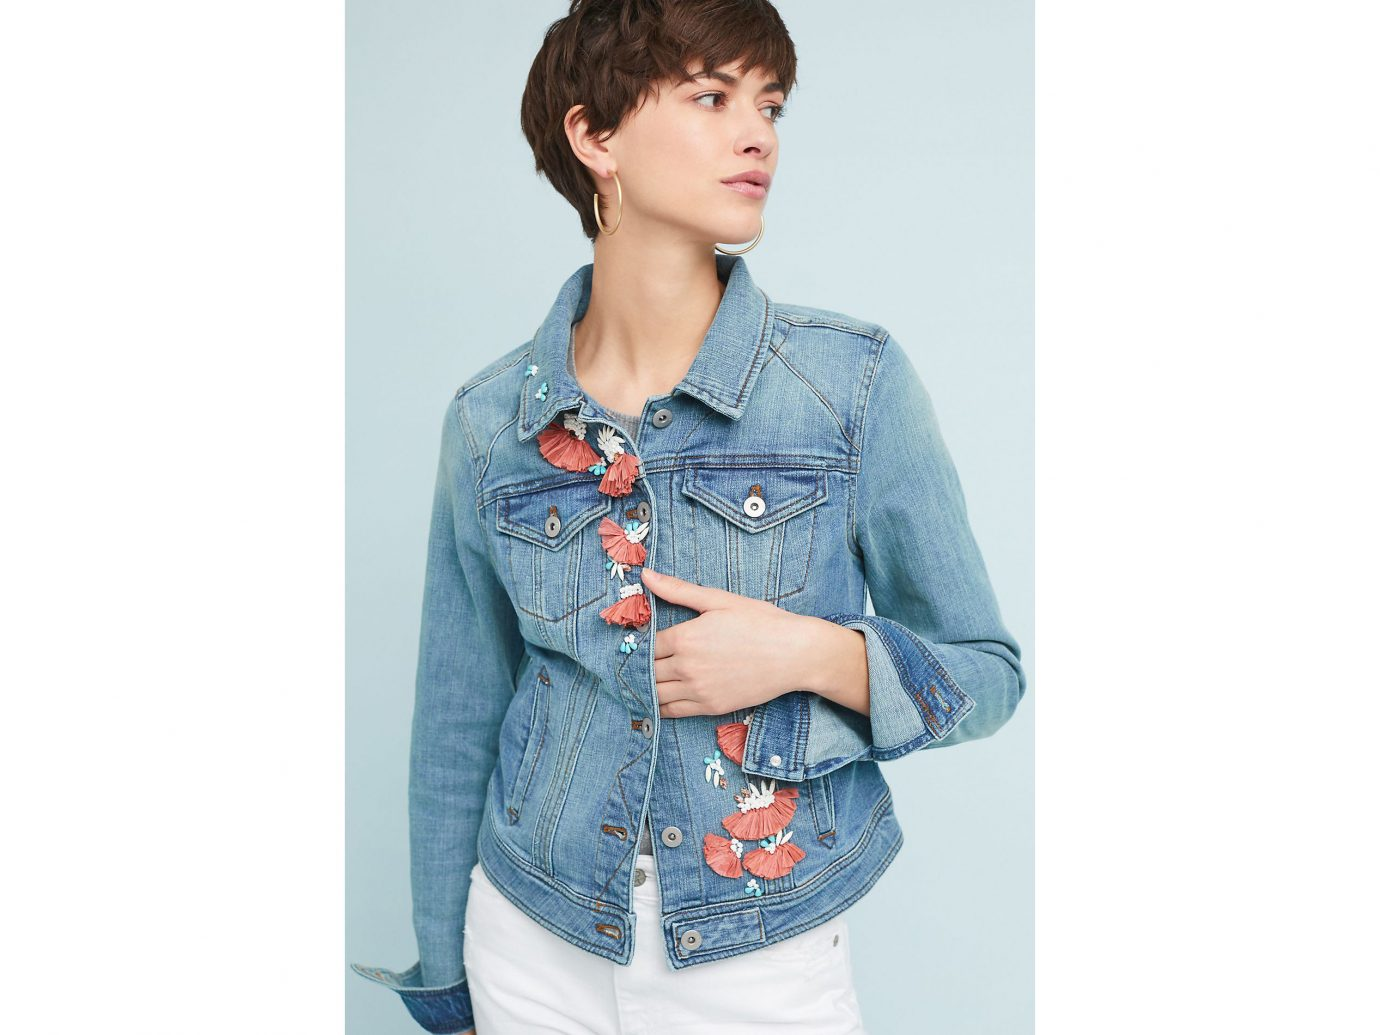 Packing Tips Spring Travel Style + Design Travel Shop person clothing denim standing jeans sleeve shoulder outerwear textile fashion model posing shirt button jacket blouse hand